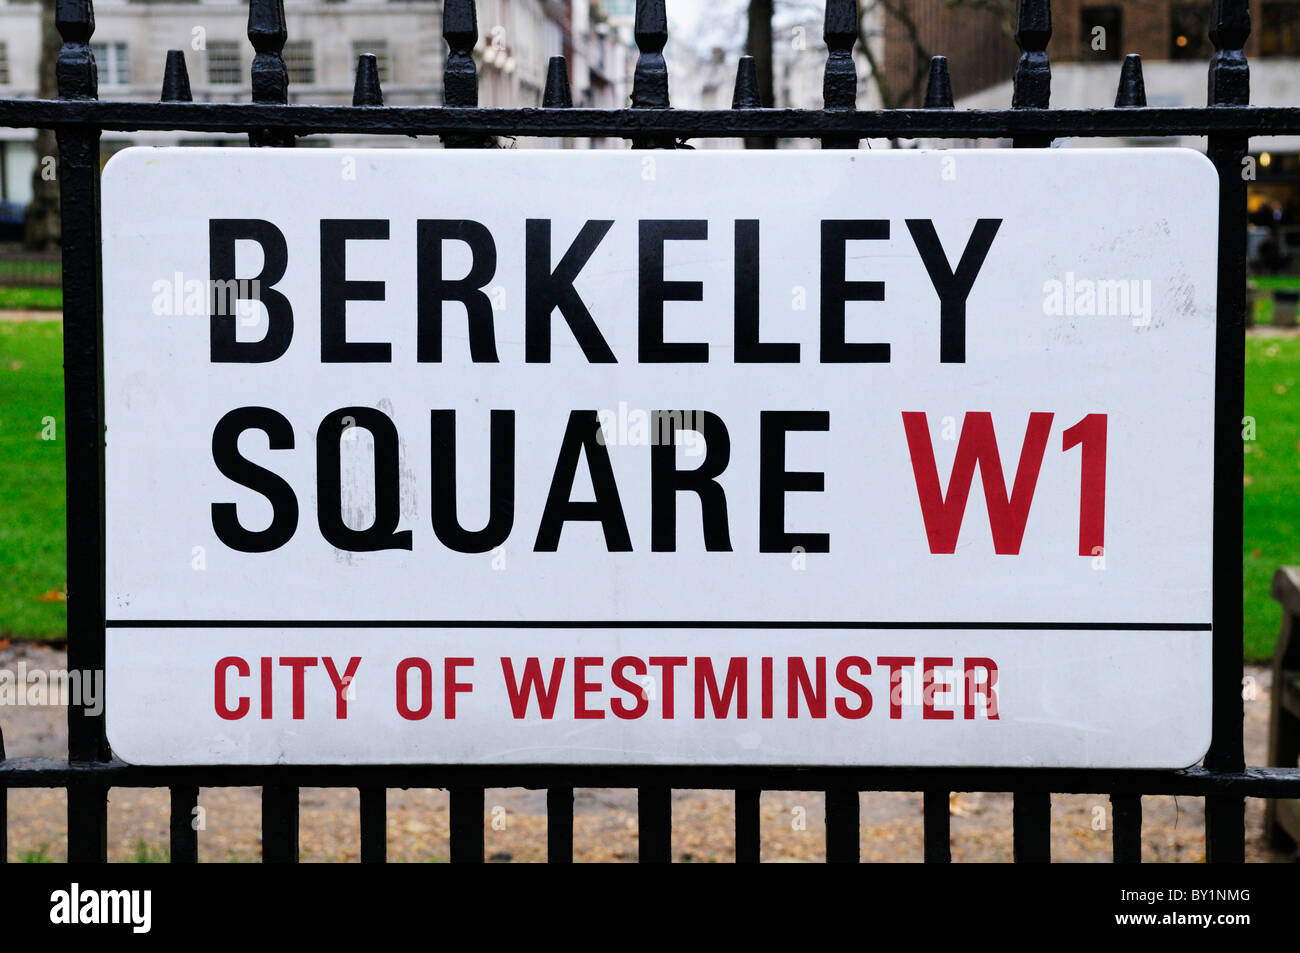 Berkeley Square W1 street sign, Mayfair, London, England, UK - Stock Image